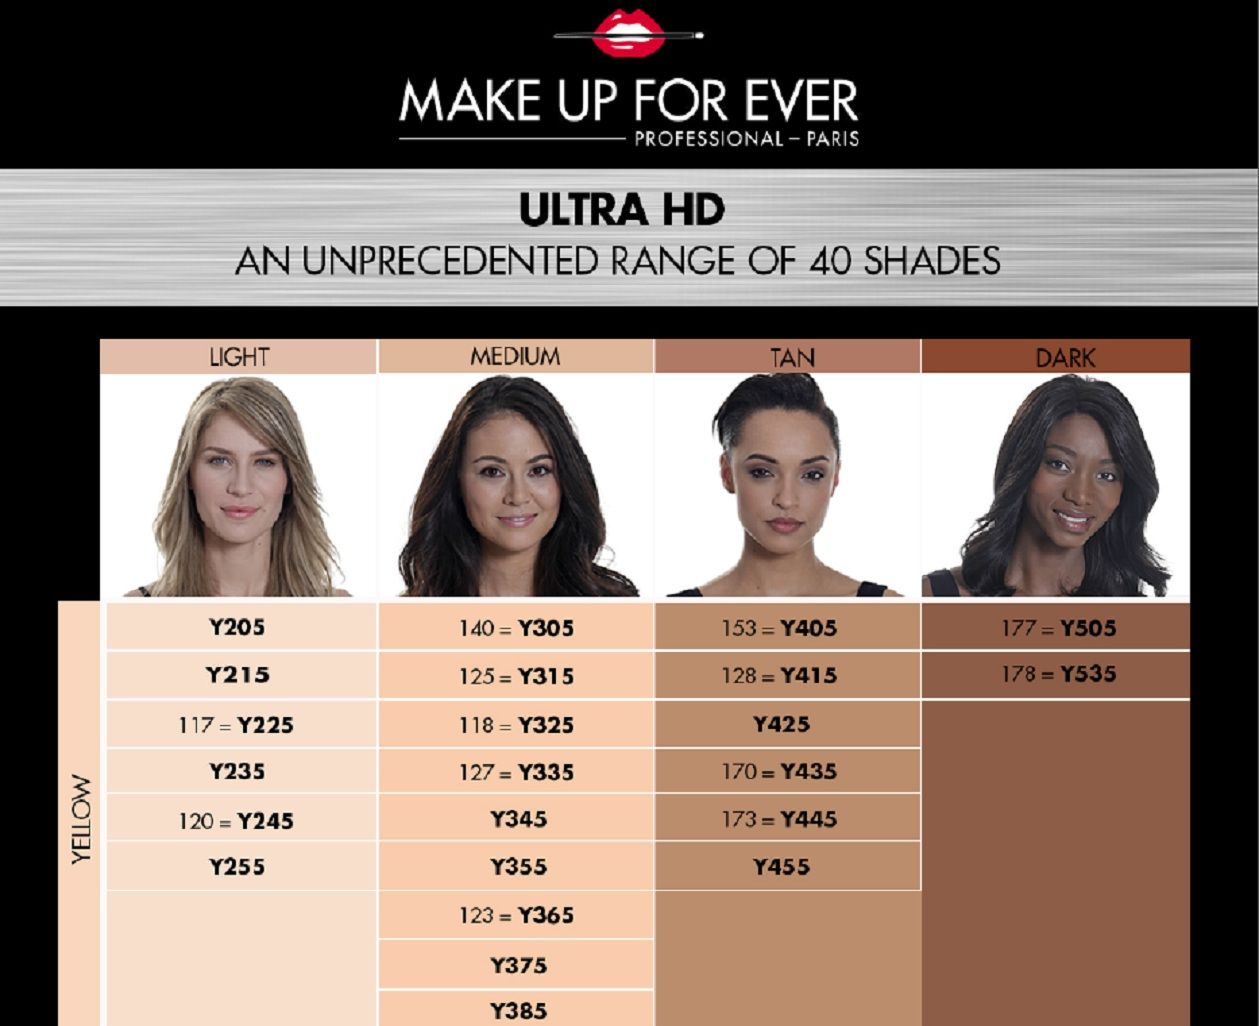 HD - MAKE UP FOR EVER